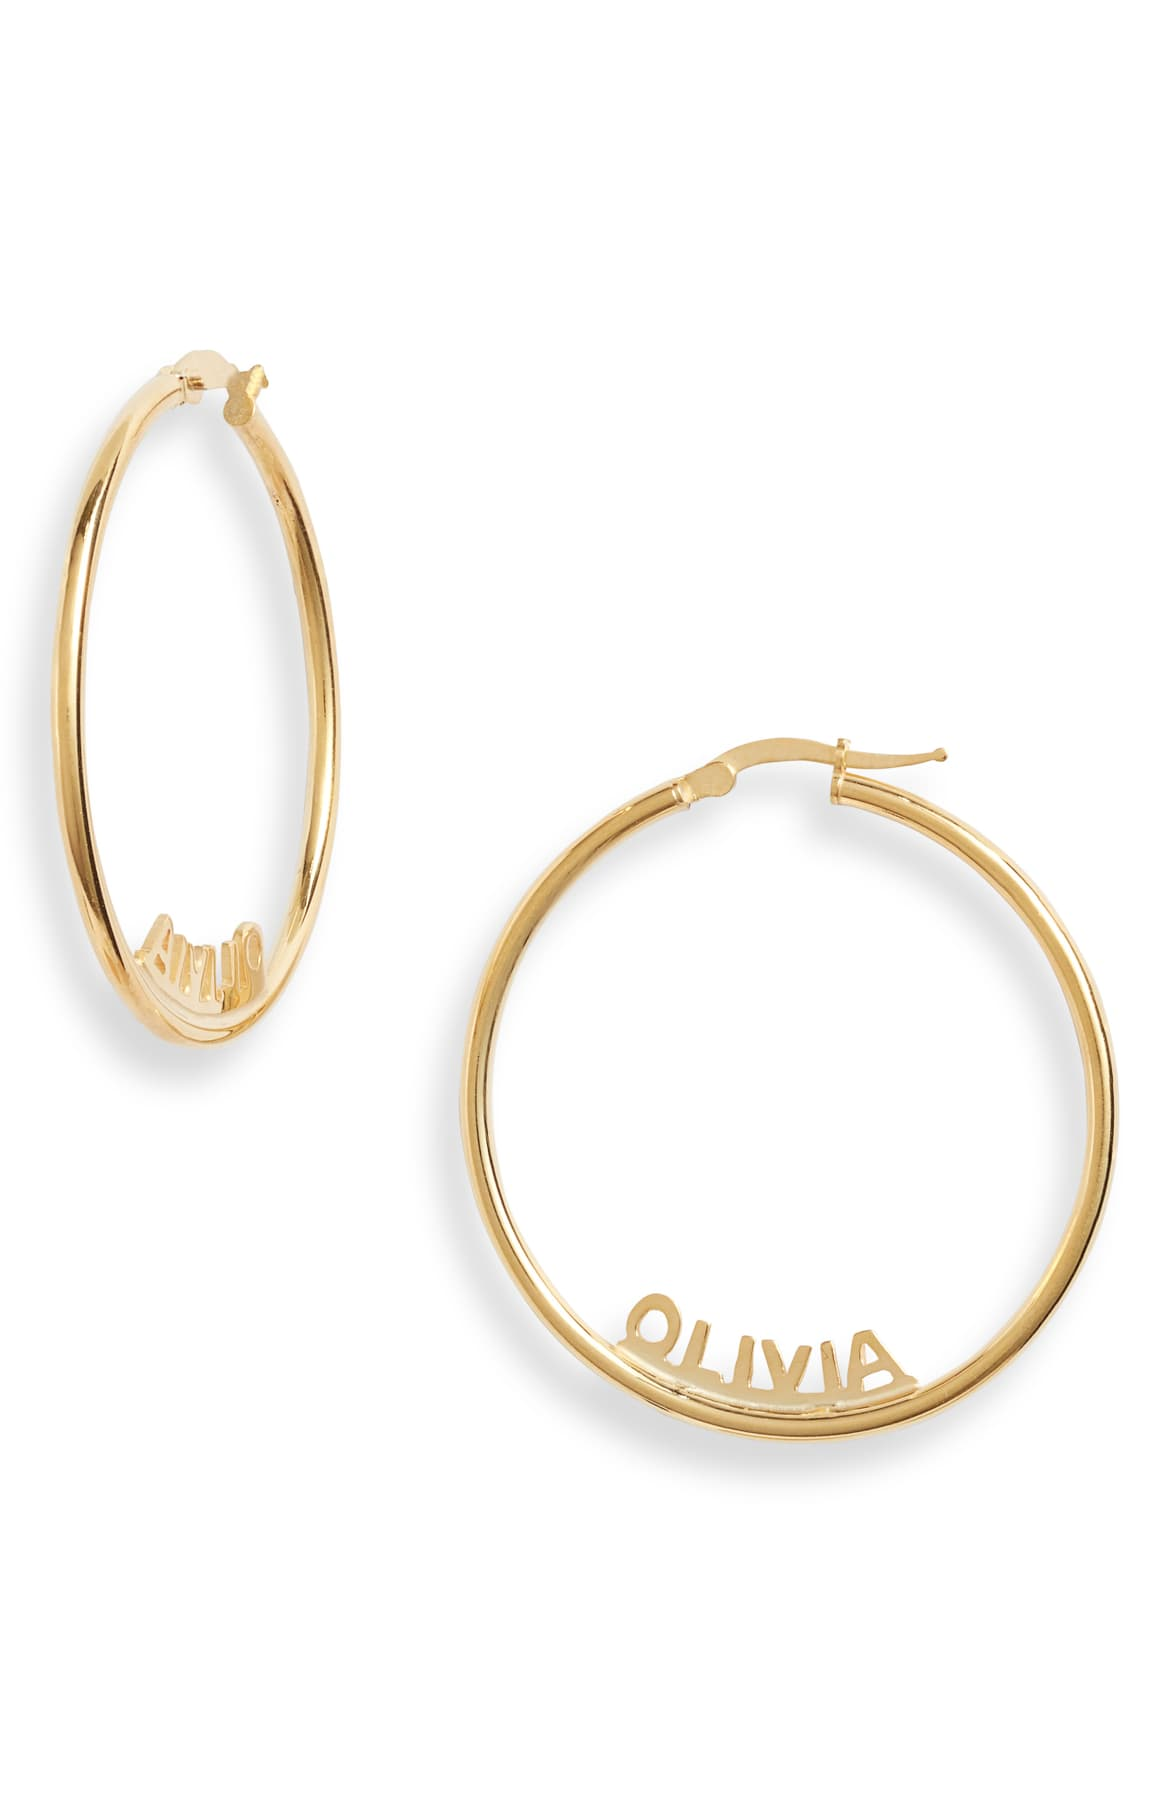 <p>With a personalized design featuring your name in carved block letters, these tubular hoop earrings are clearly made just for you. $148. Shop it. (Image: Nordstrom)</p><p></p>